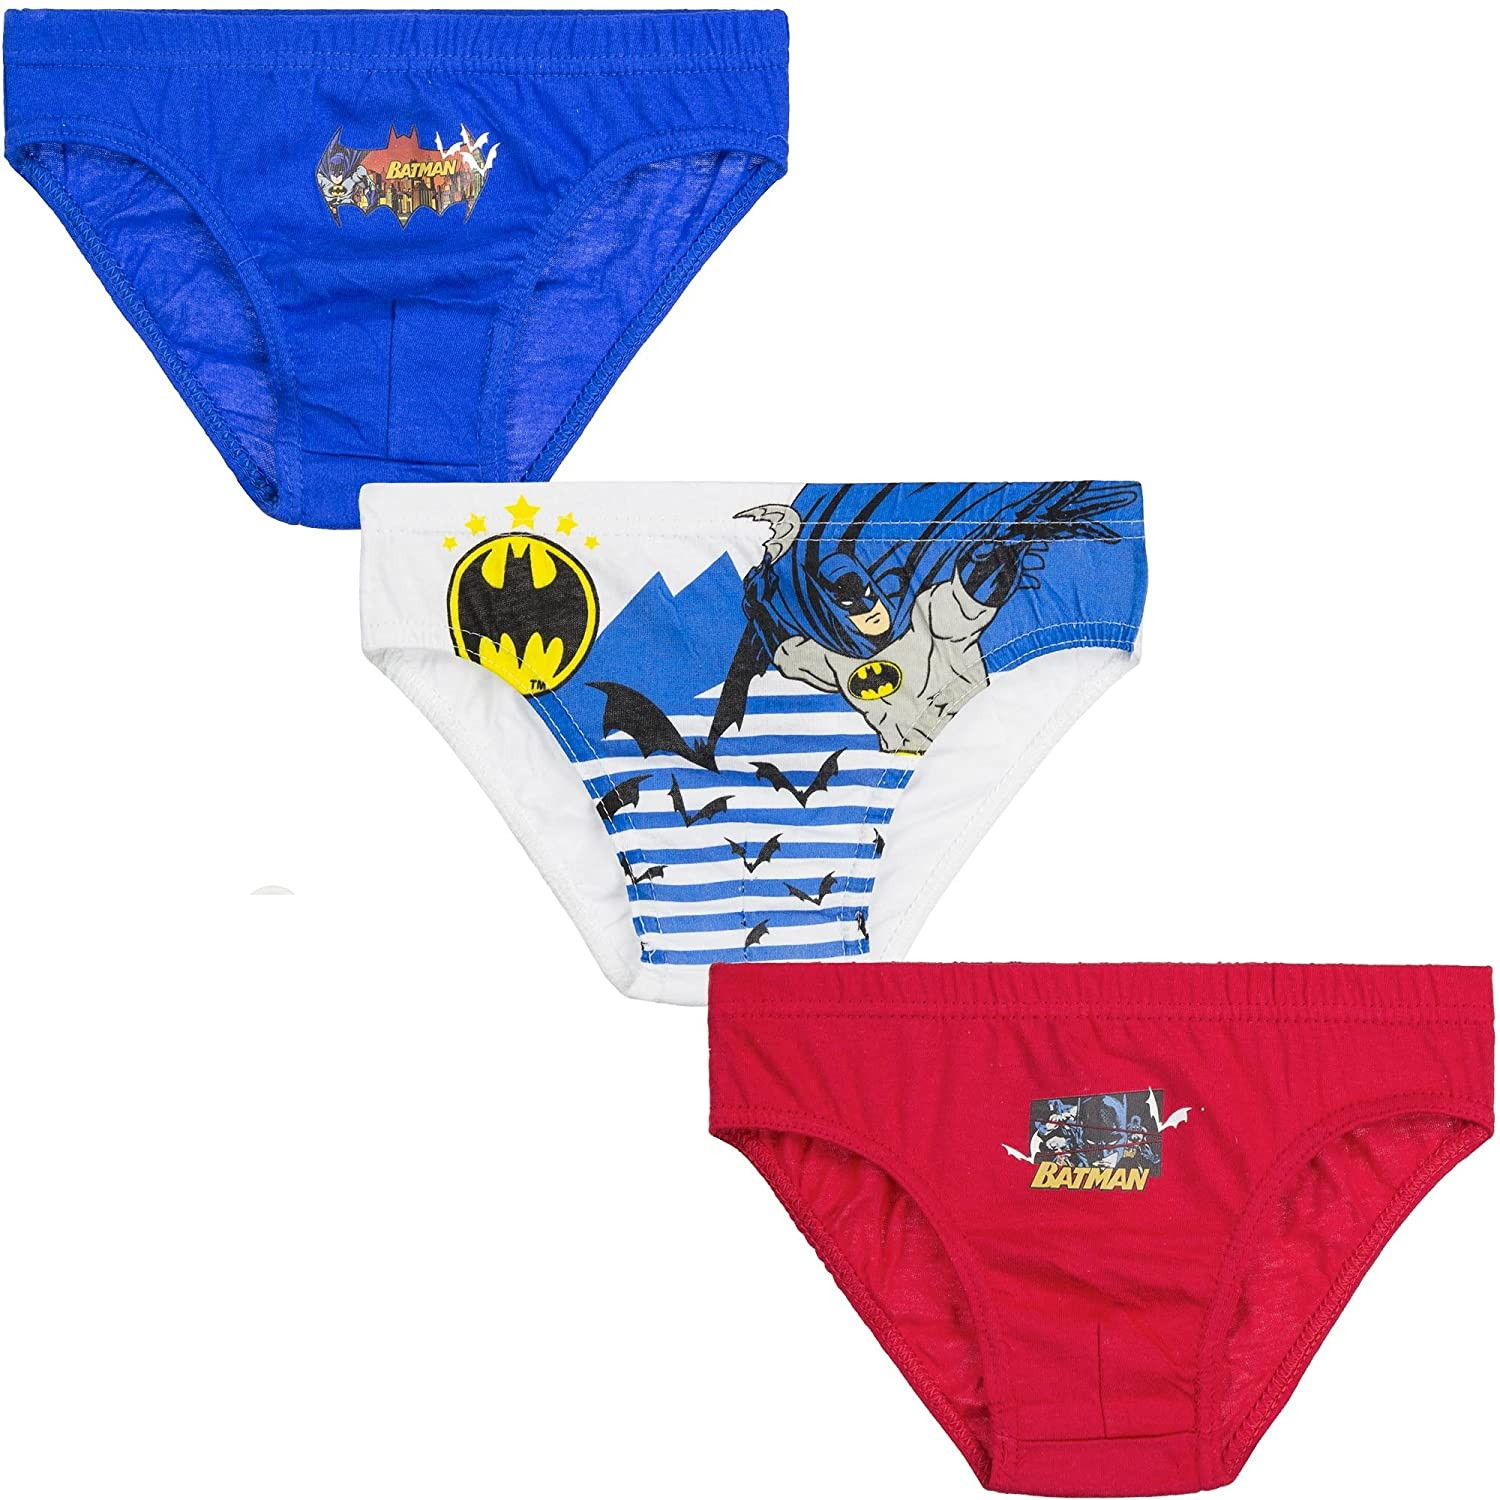 Boys Batman Briefs Pants Size 2 3 4 5 6 7 8 Years Super Hero Knickers Official Character